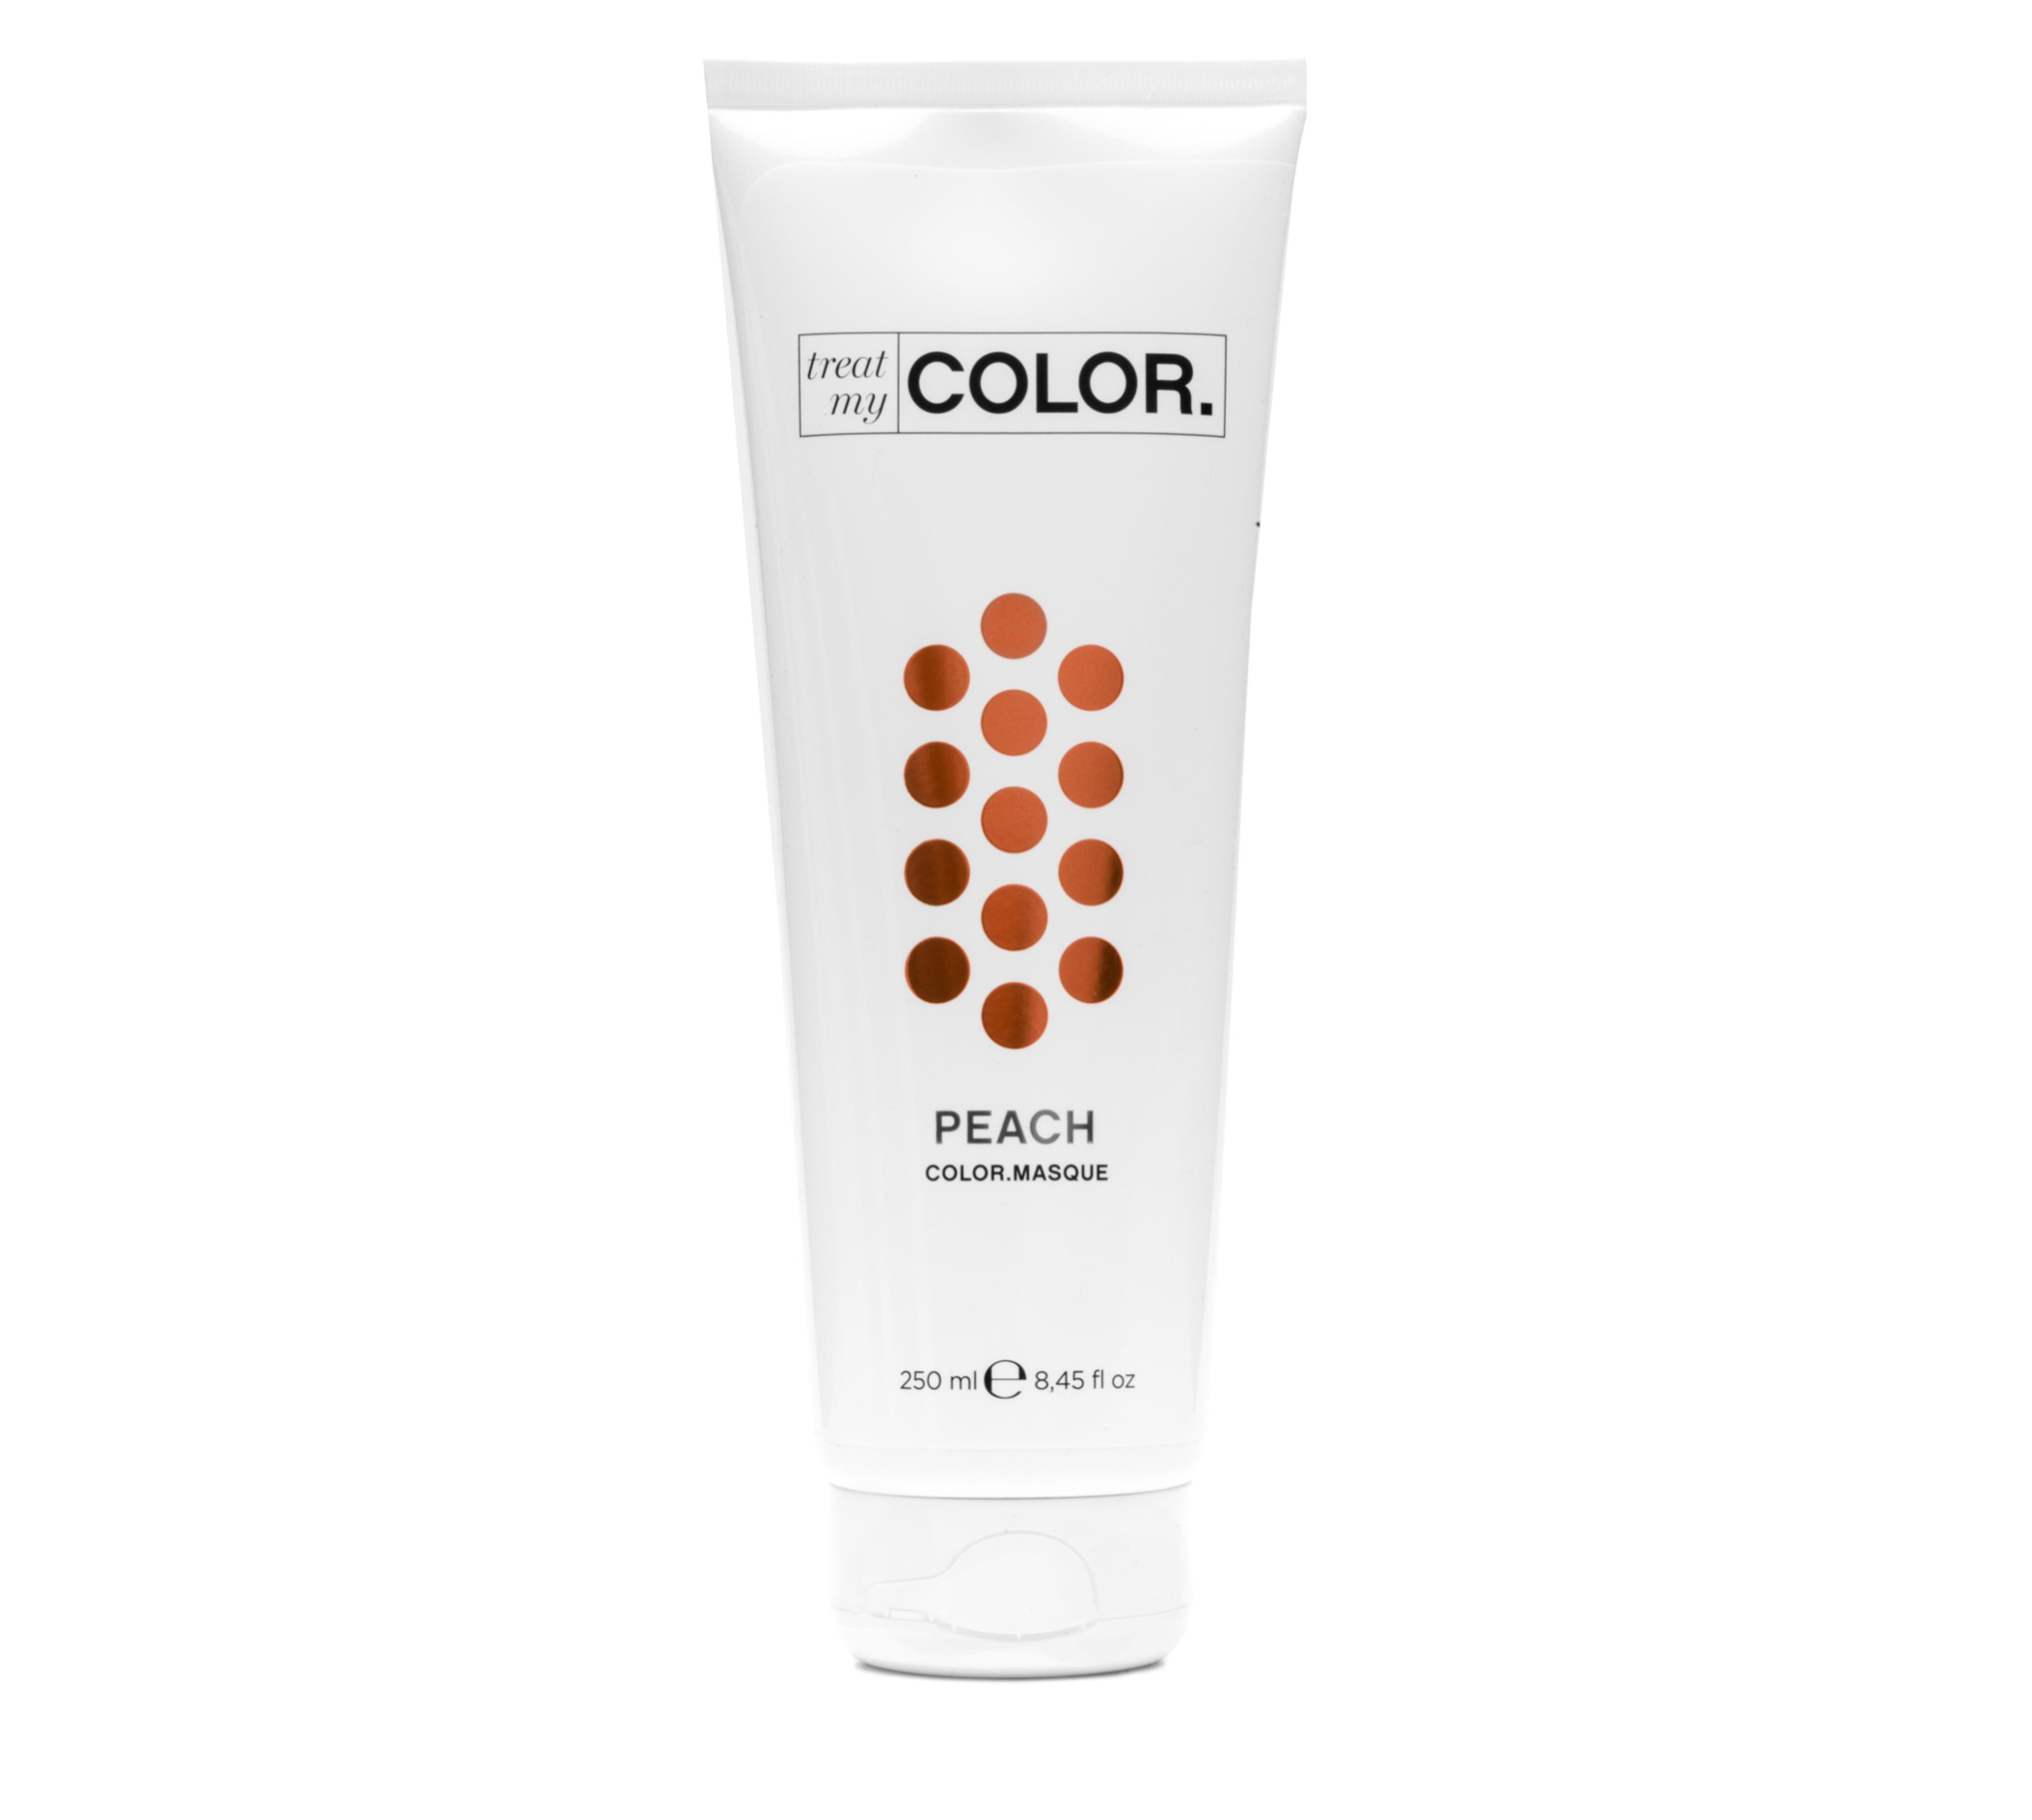 Color Masque Peach